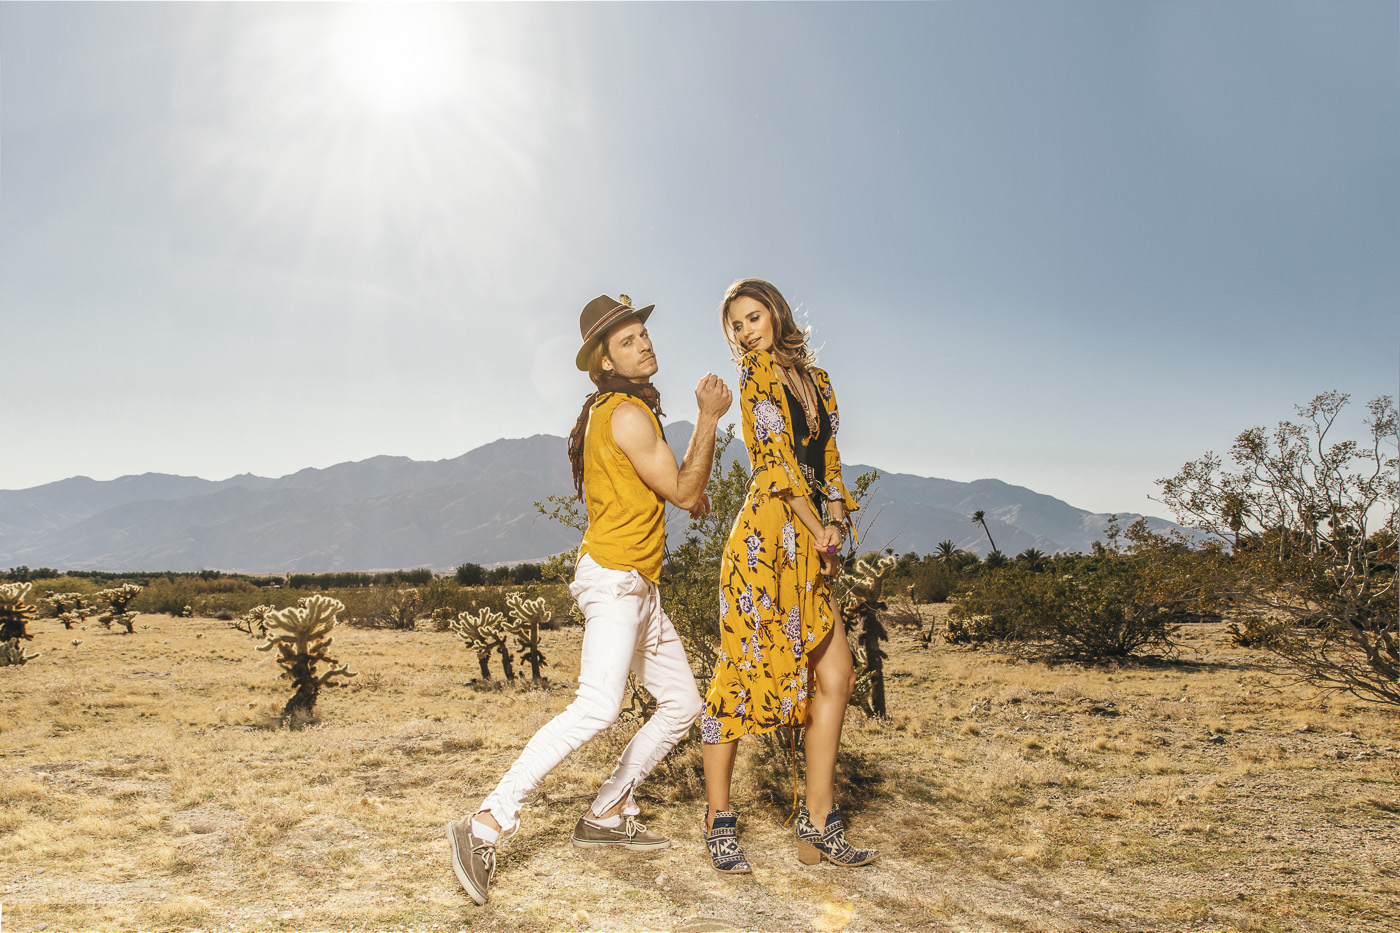 Stylish photo shoot in the desert